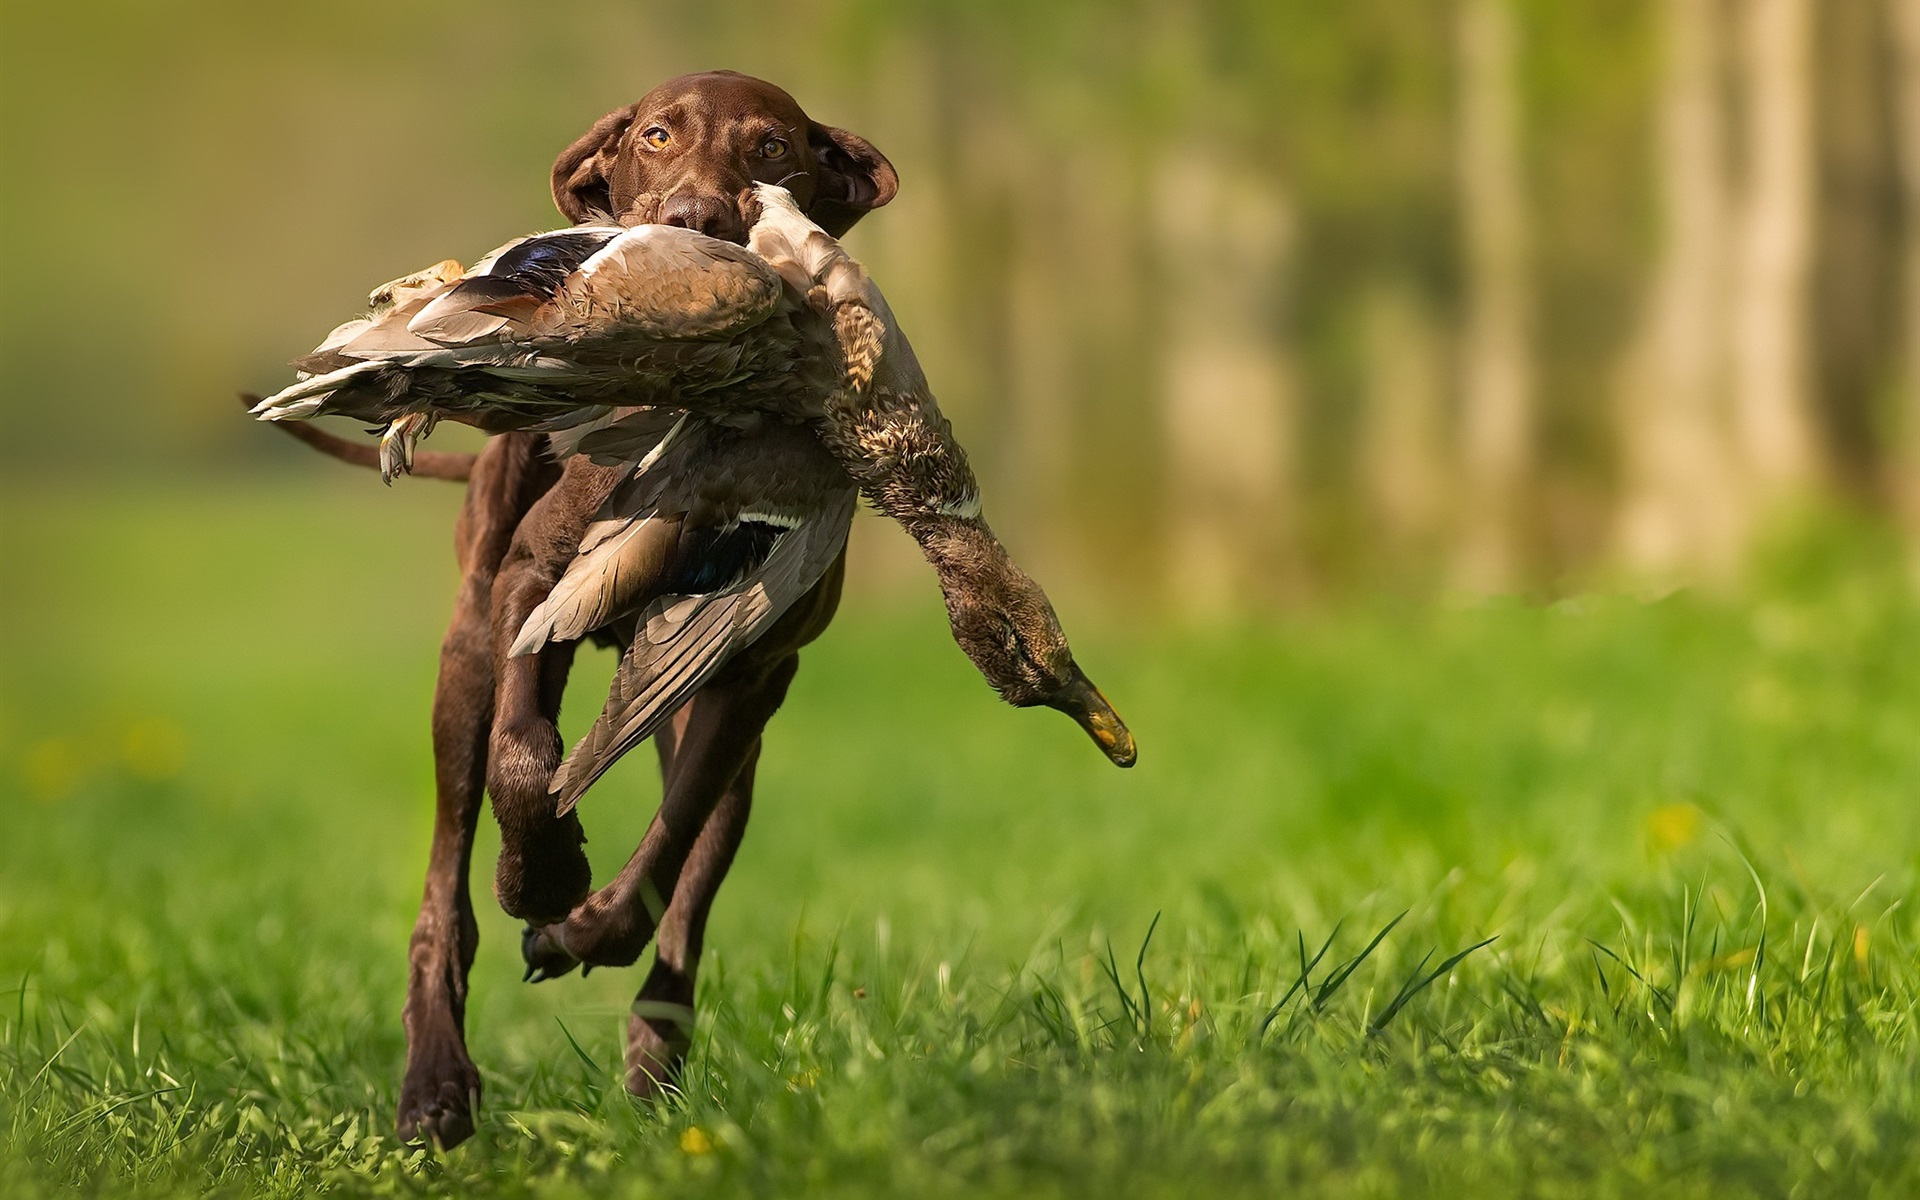 Dog hunting a duck 1920x1200 HD Picture